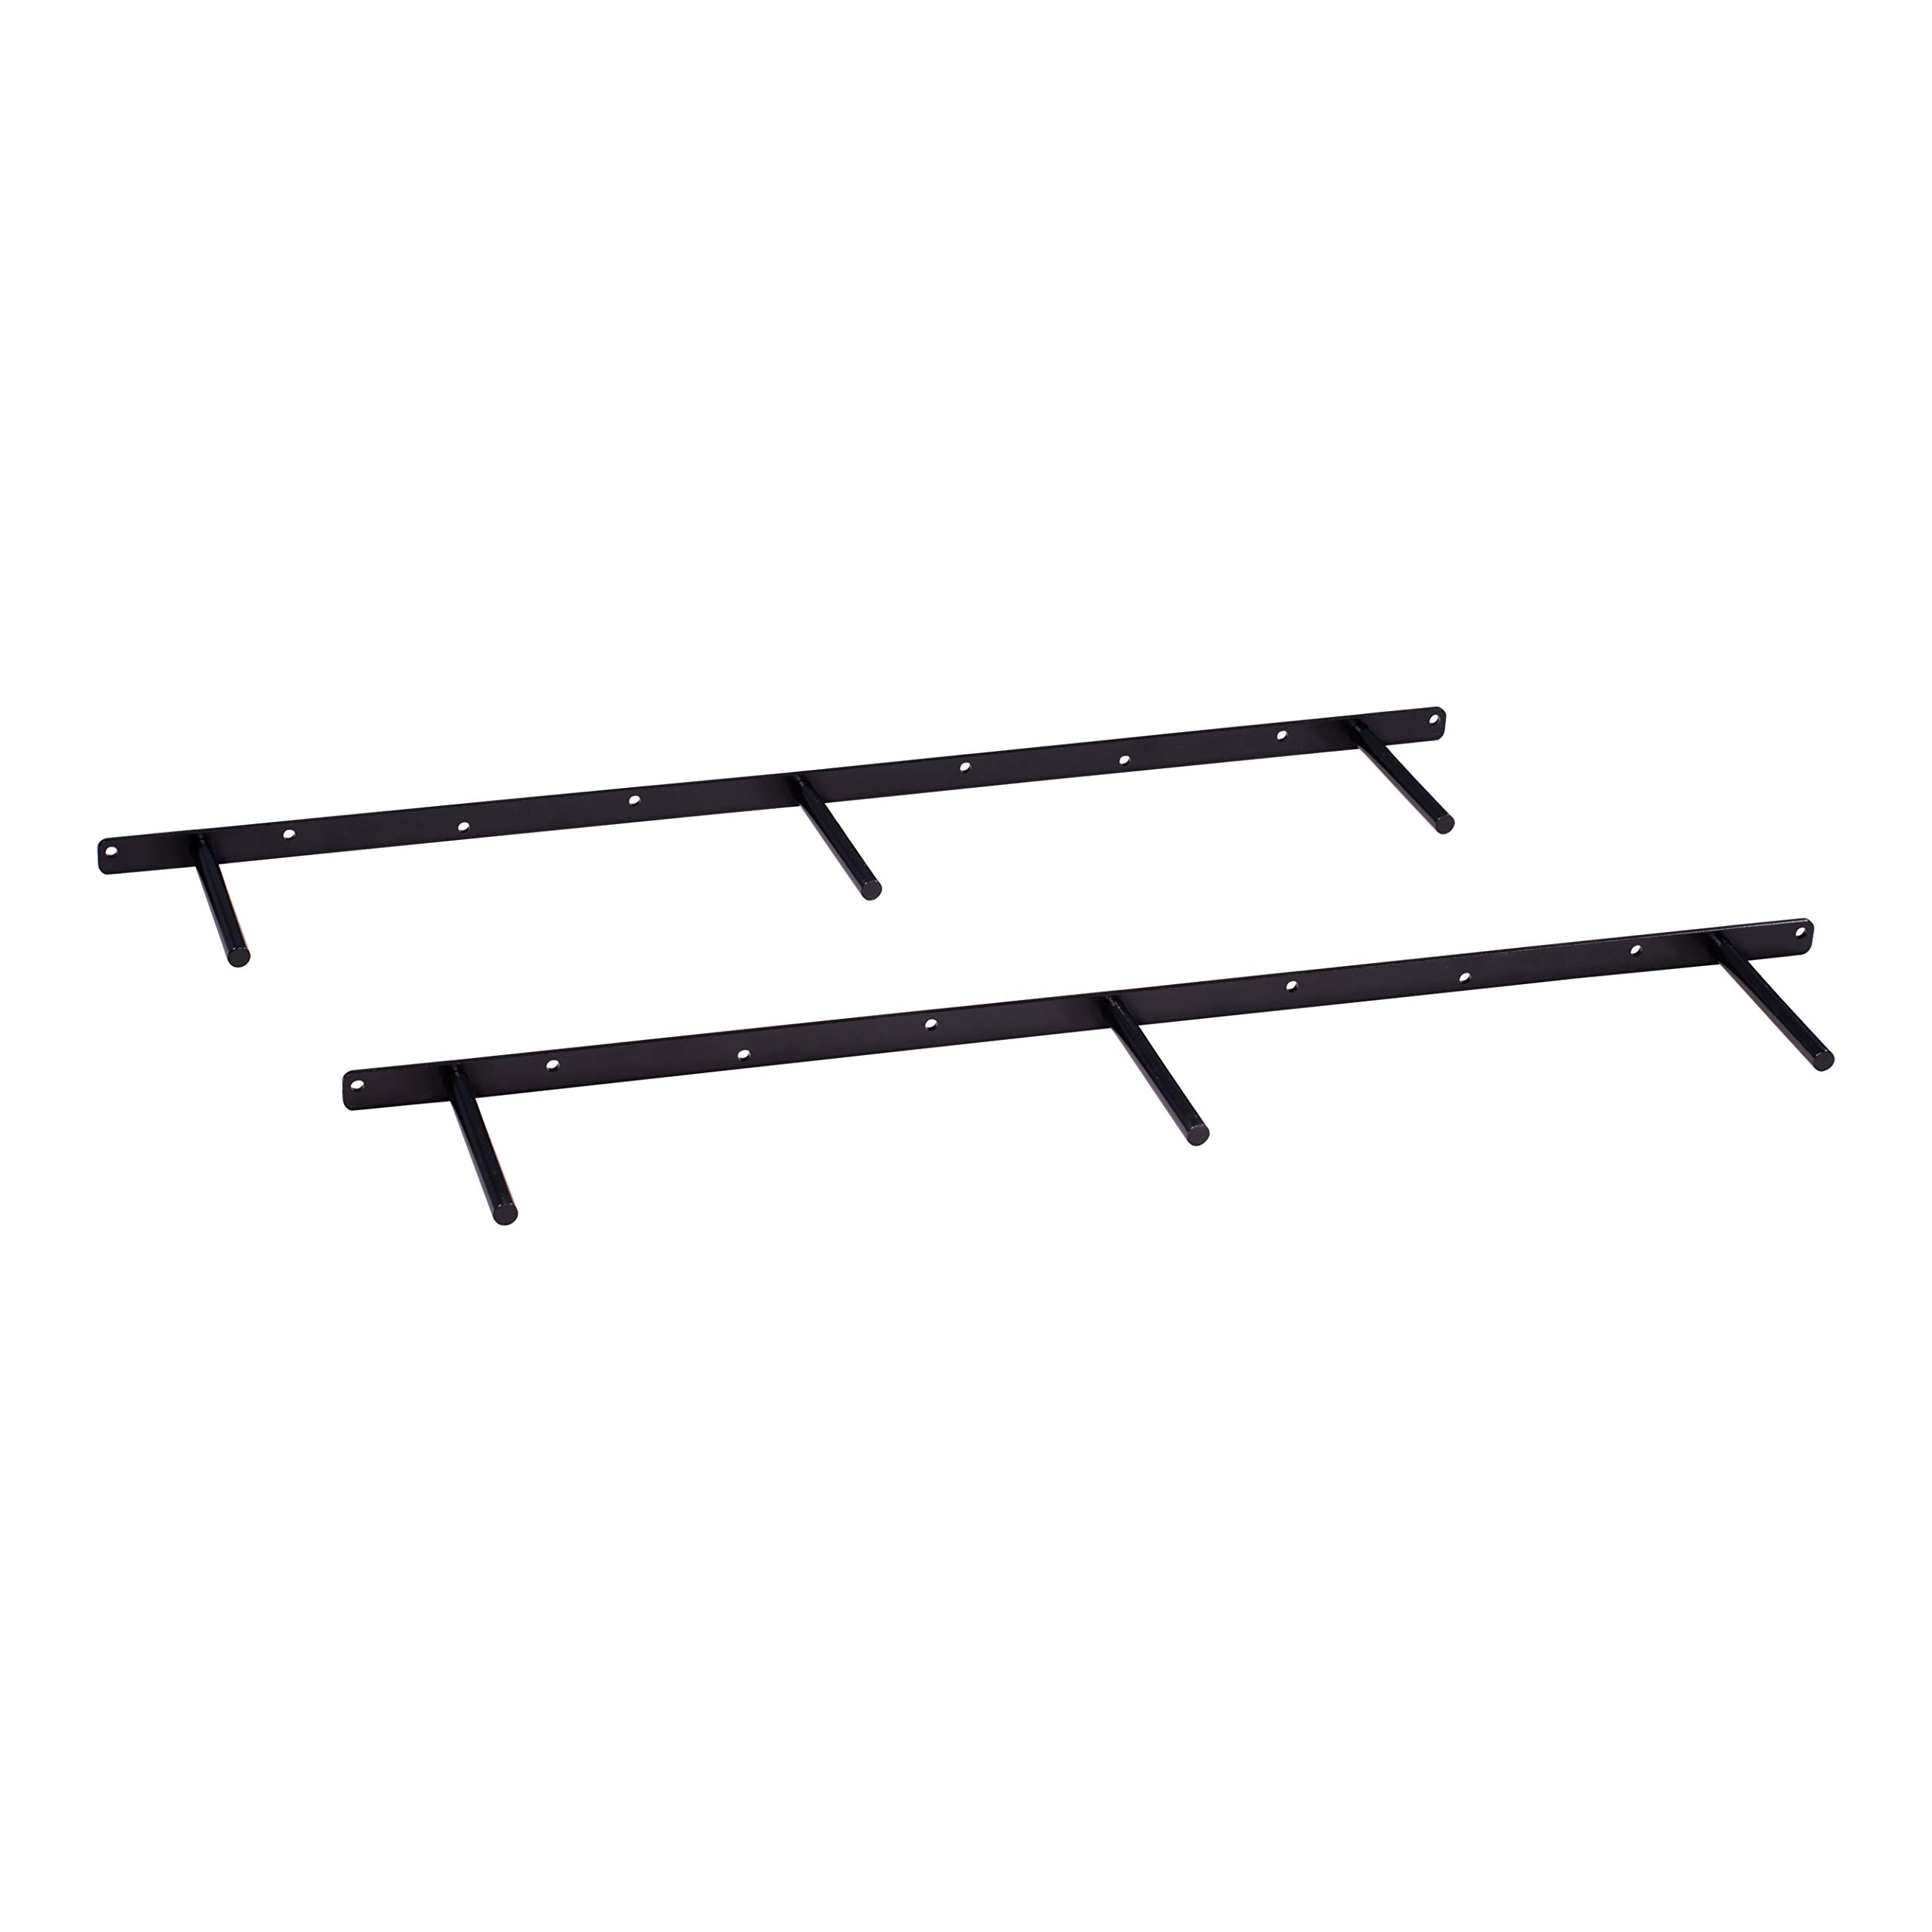 DAKODA LOVE 32'' Floating Shelf Brackets (Set of 2), for 34'' to 46'' Shelves, Made in USA, Uni-Bracket Blind Shelf Supports (32.625'' Long)